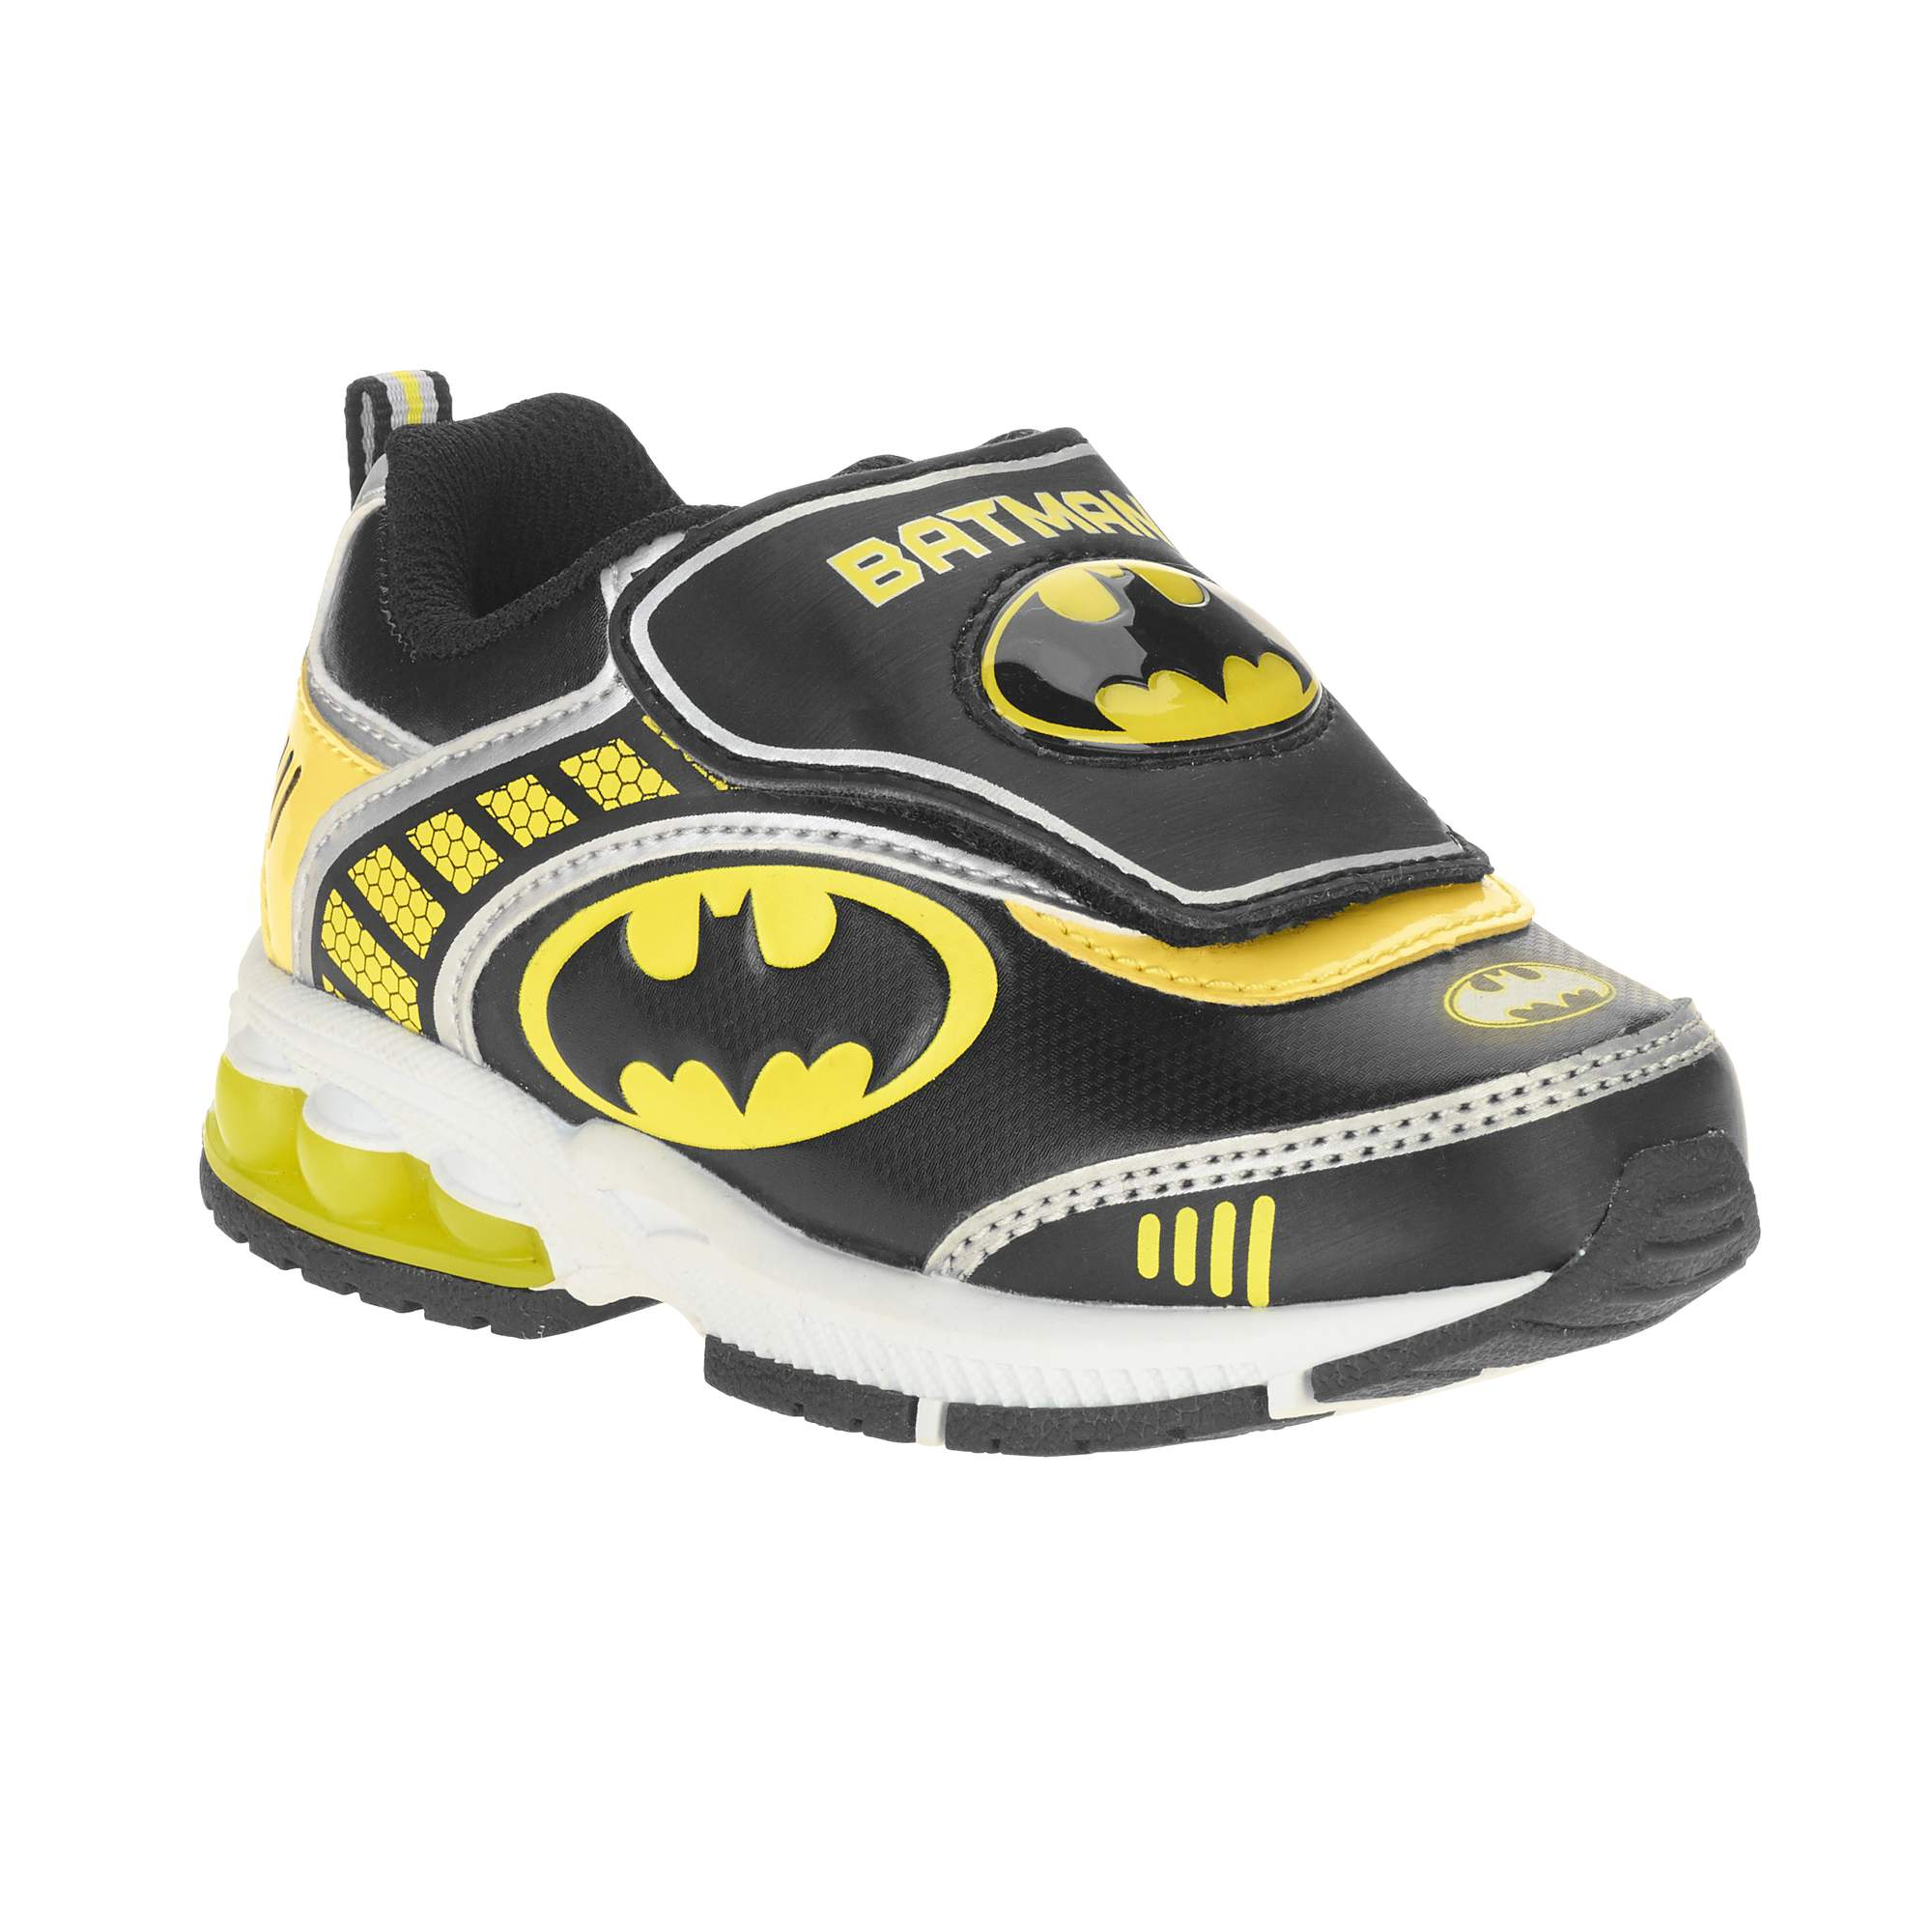 Toddler Boys' Athletic Shoe